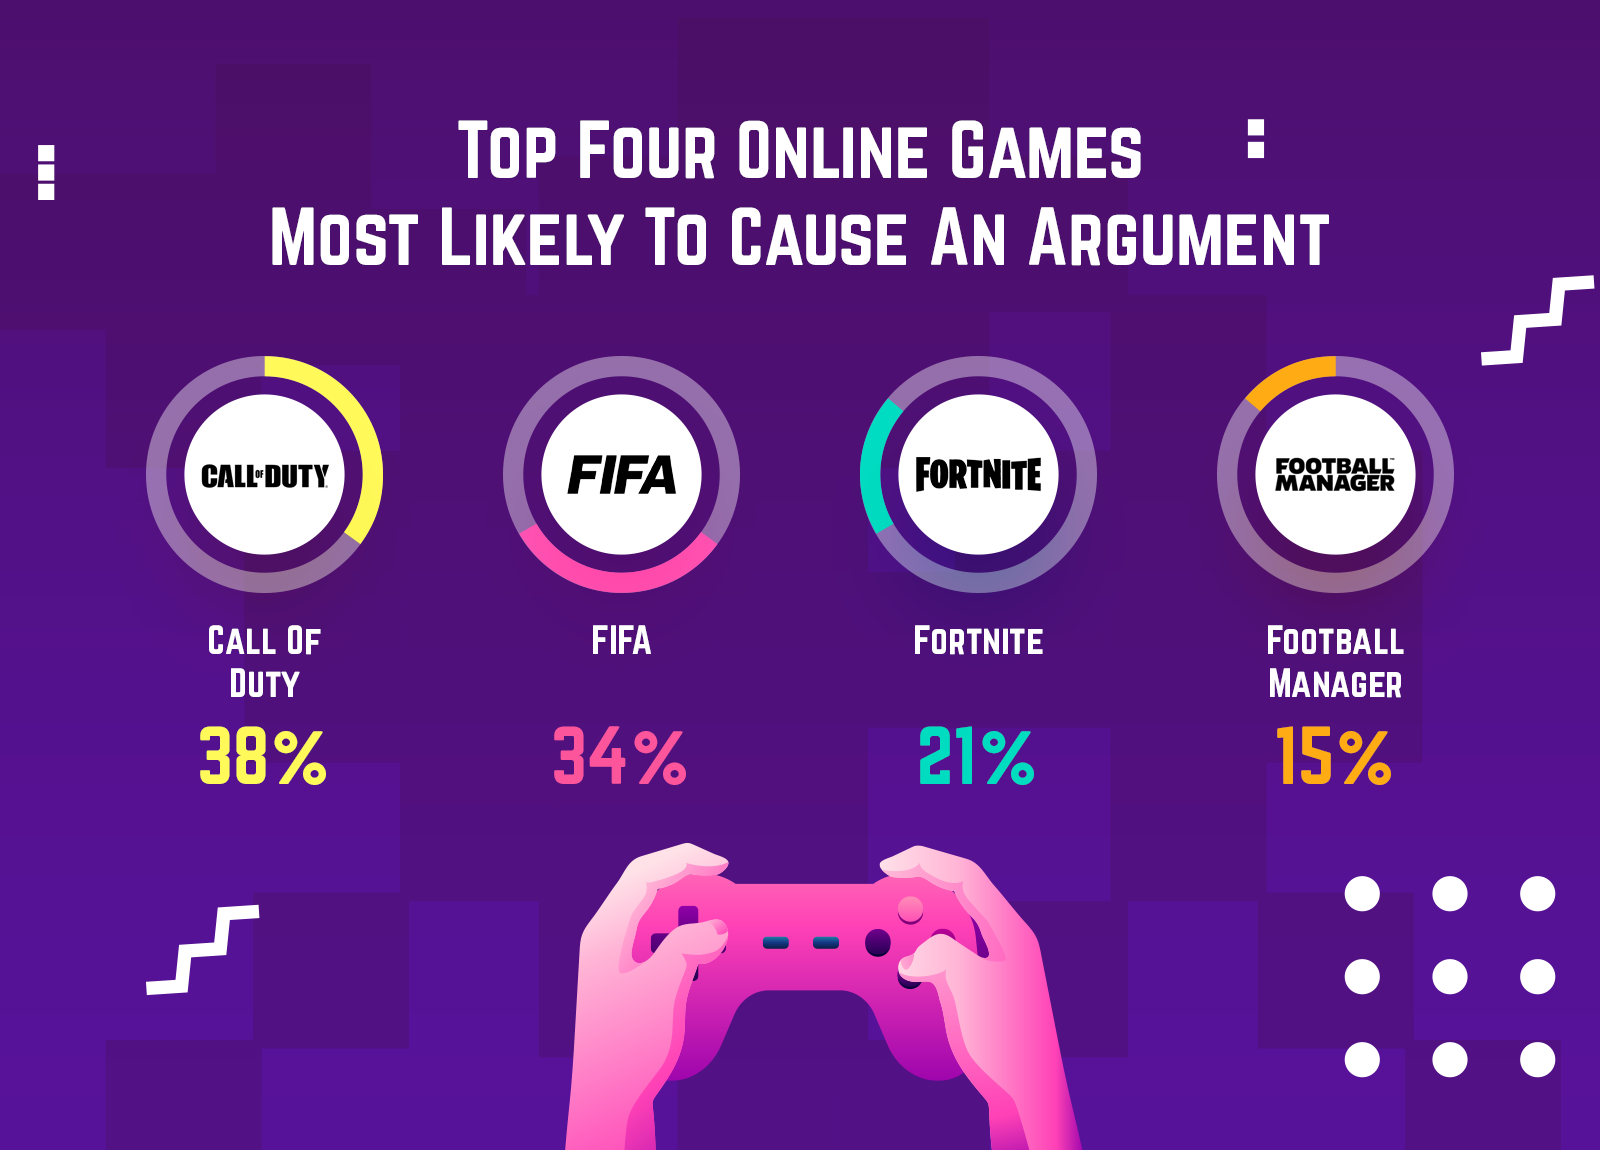 Online games most likely to cause an argument